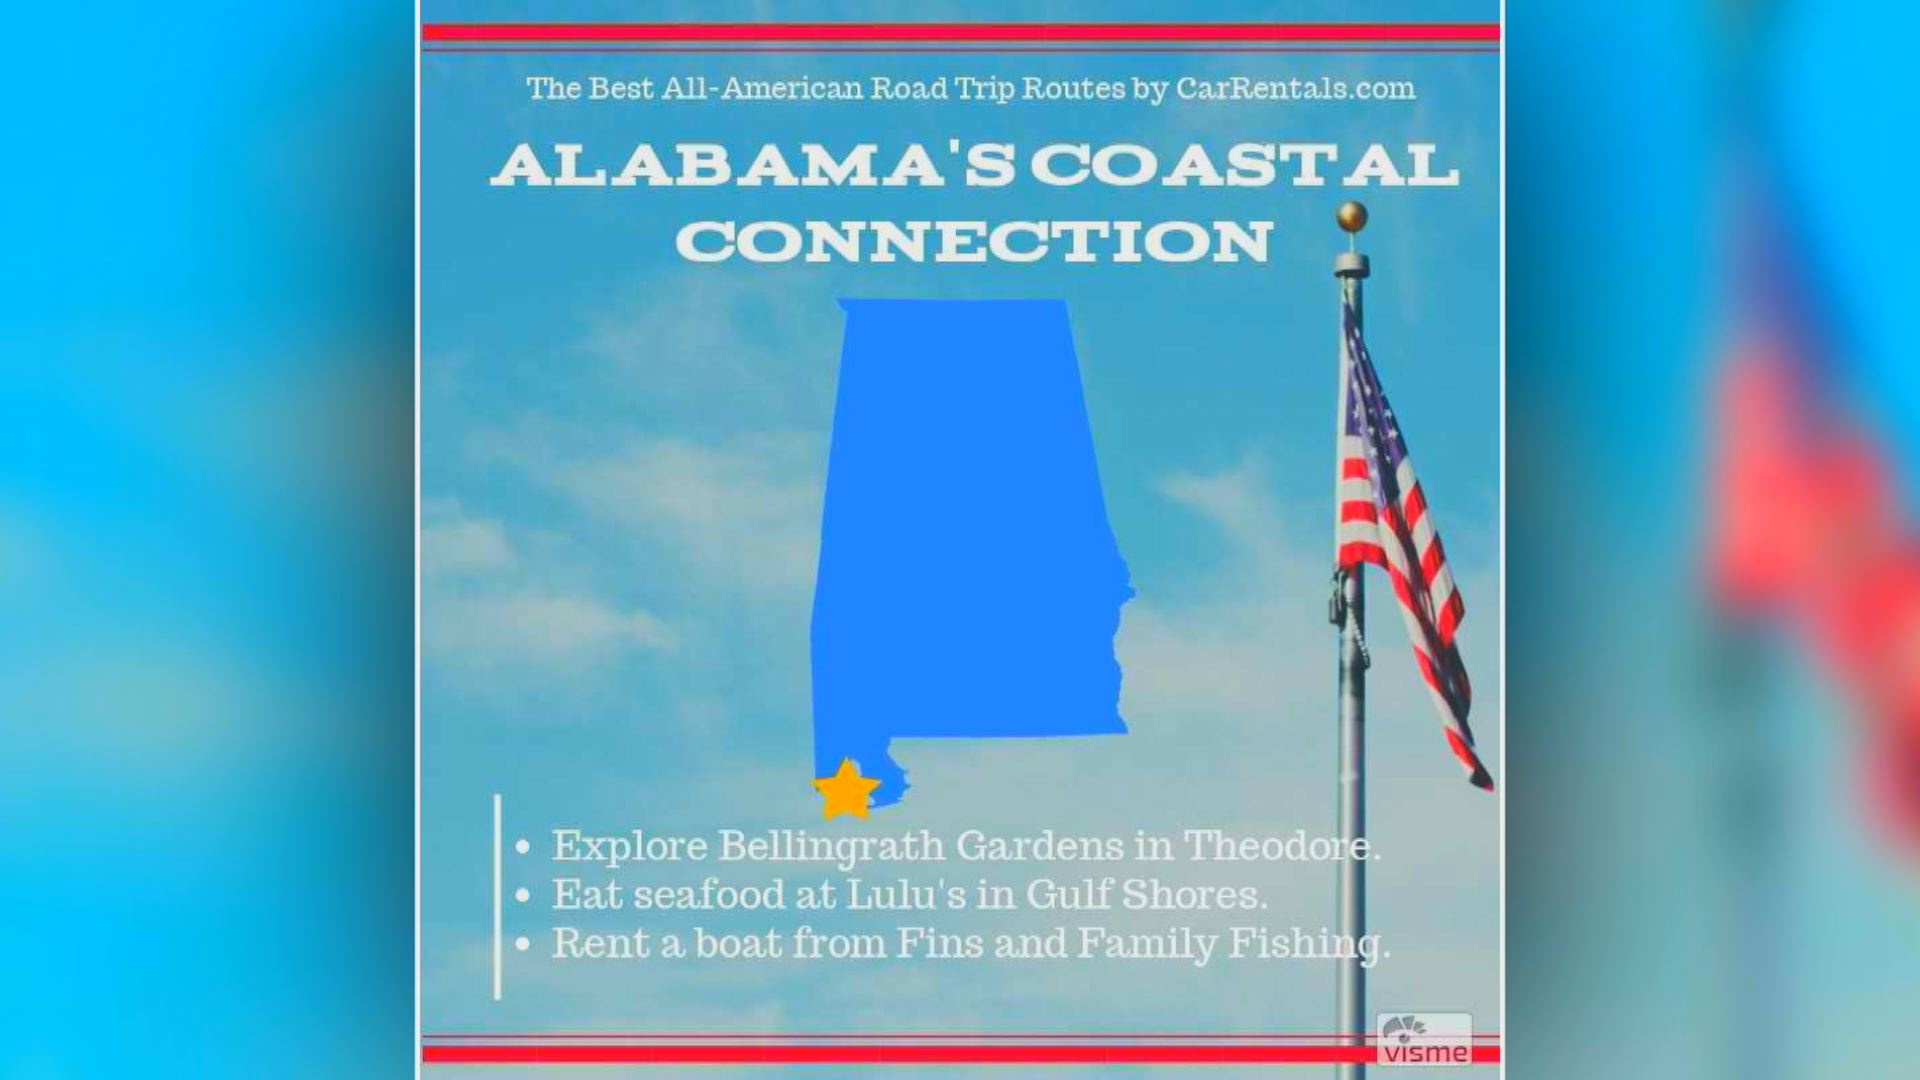 AlabamaCoastalConnection2_1535033424692.jpeg